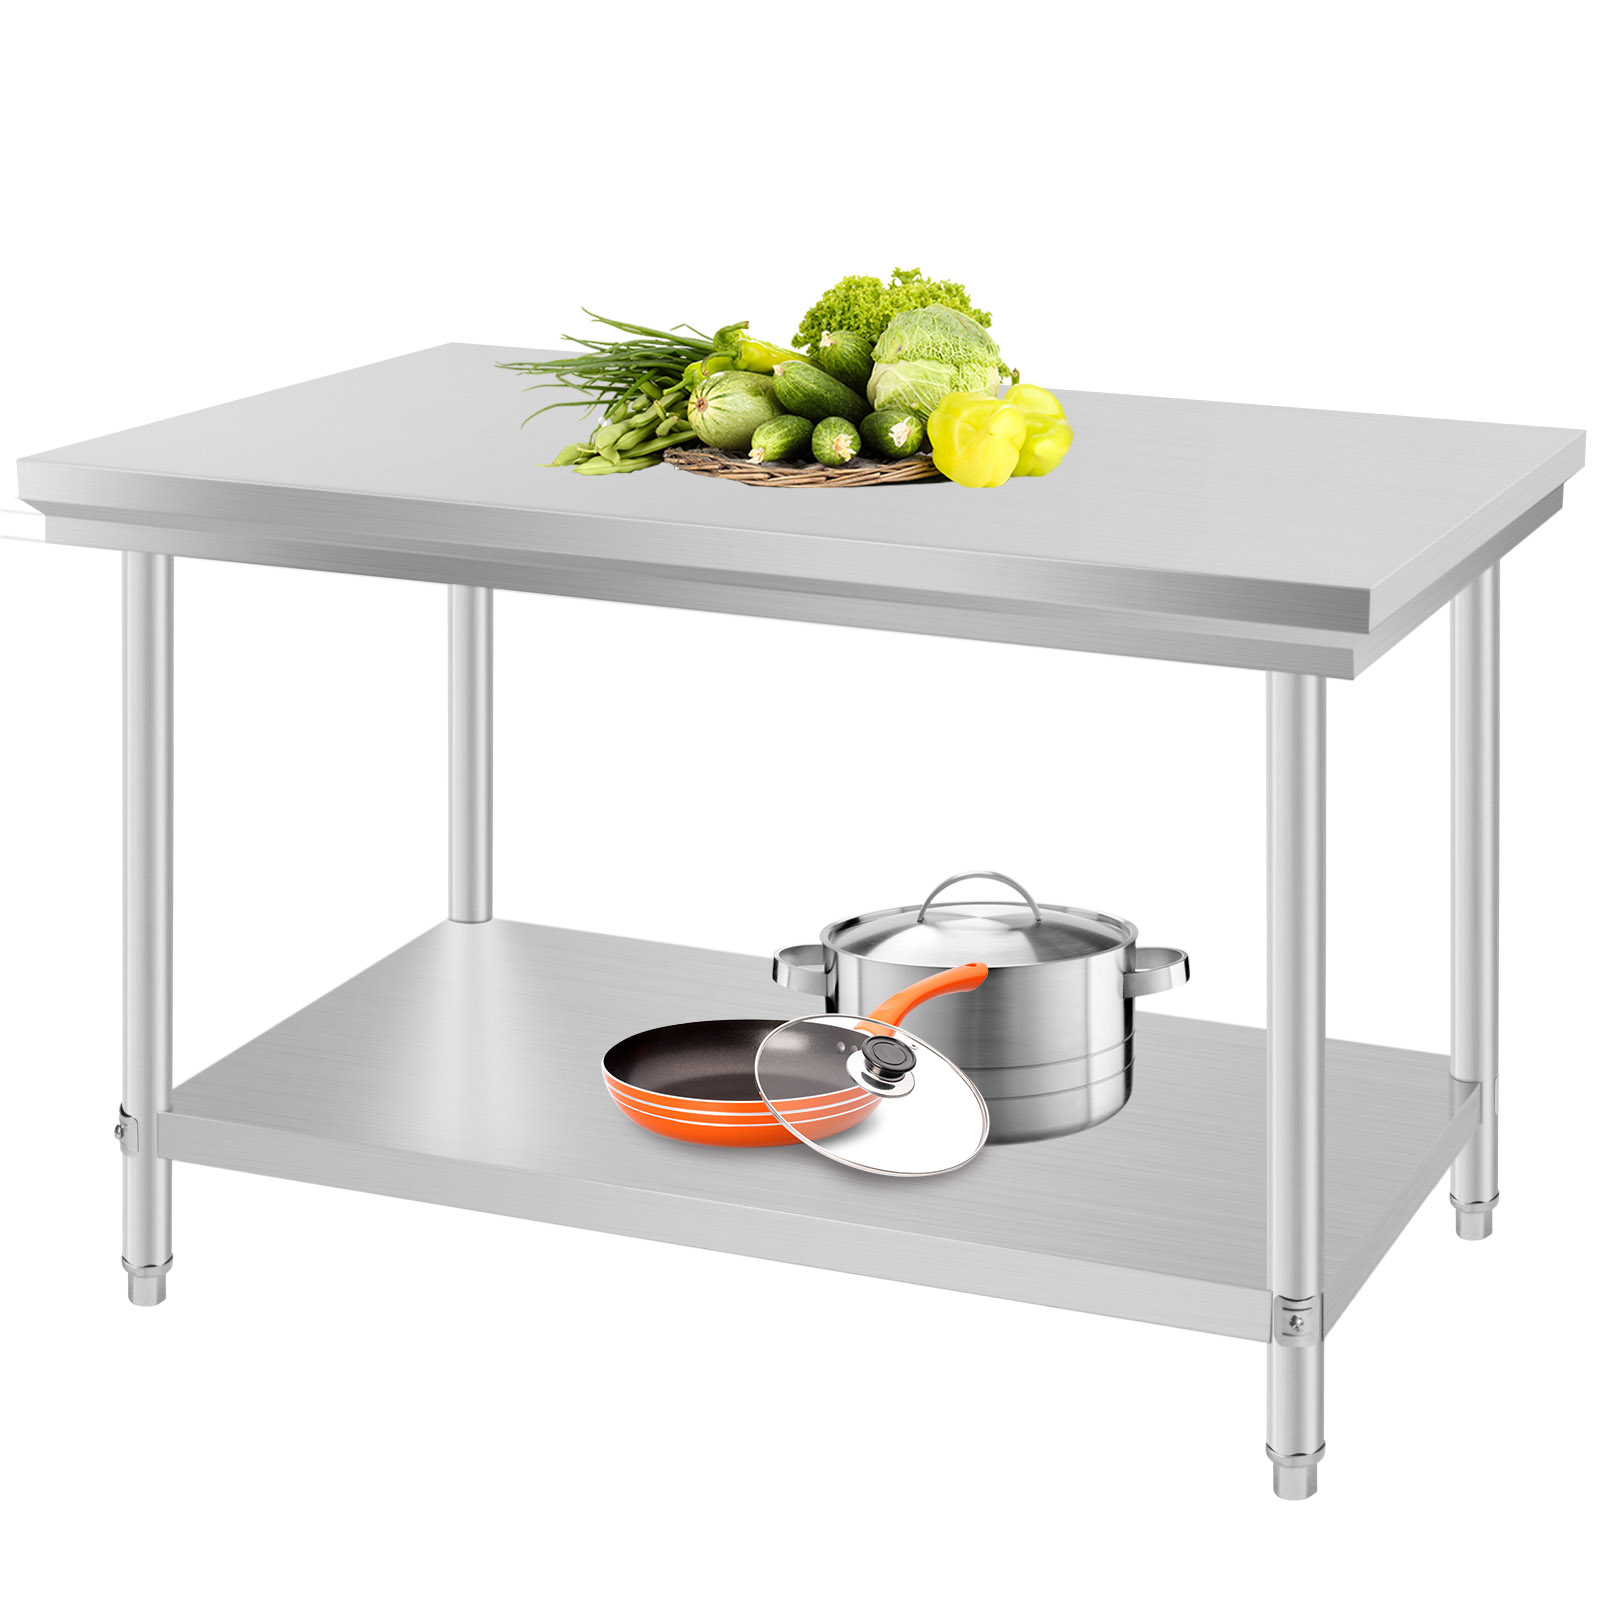 kitchen work table with storage 24 quot x 48 quot stainless steel kitchen work prep table storage 8772